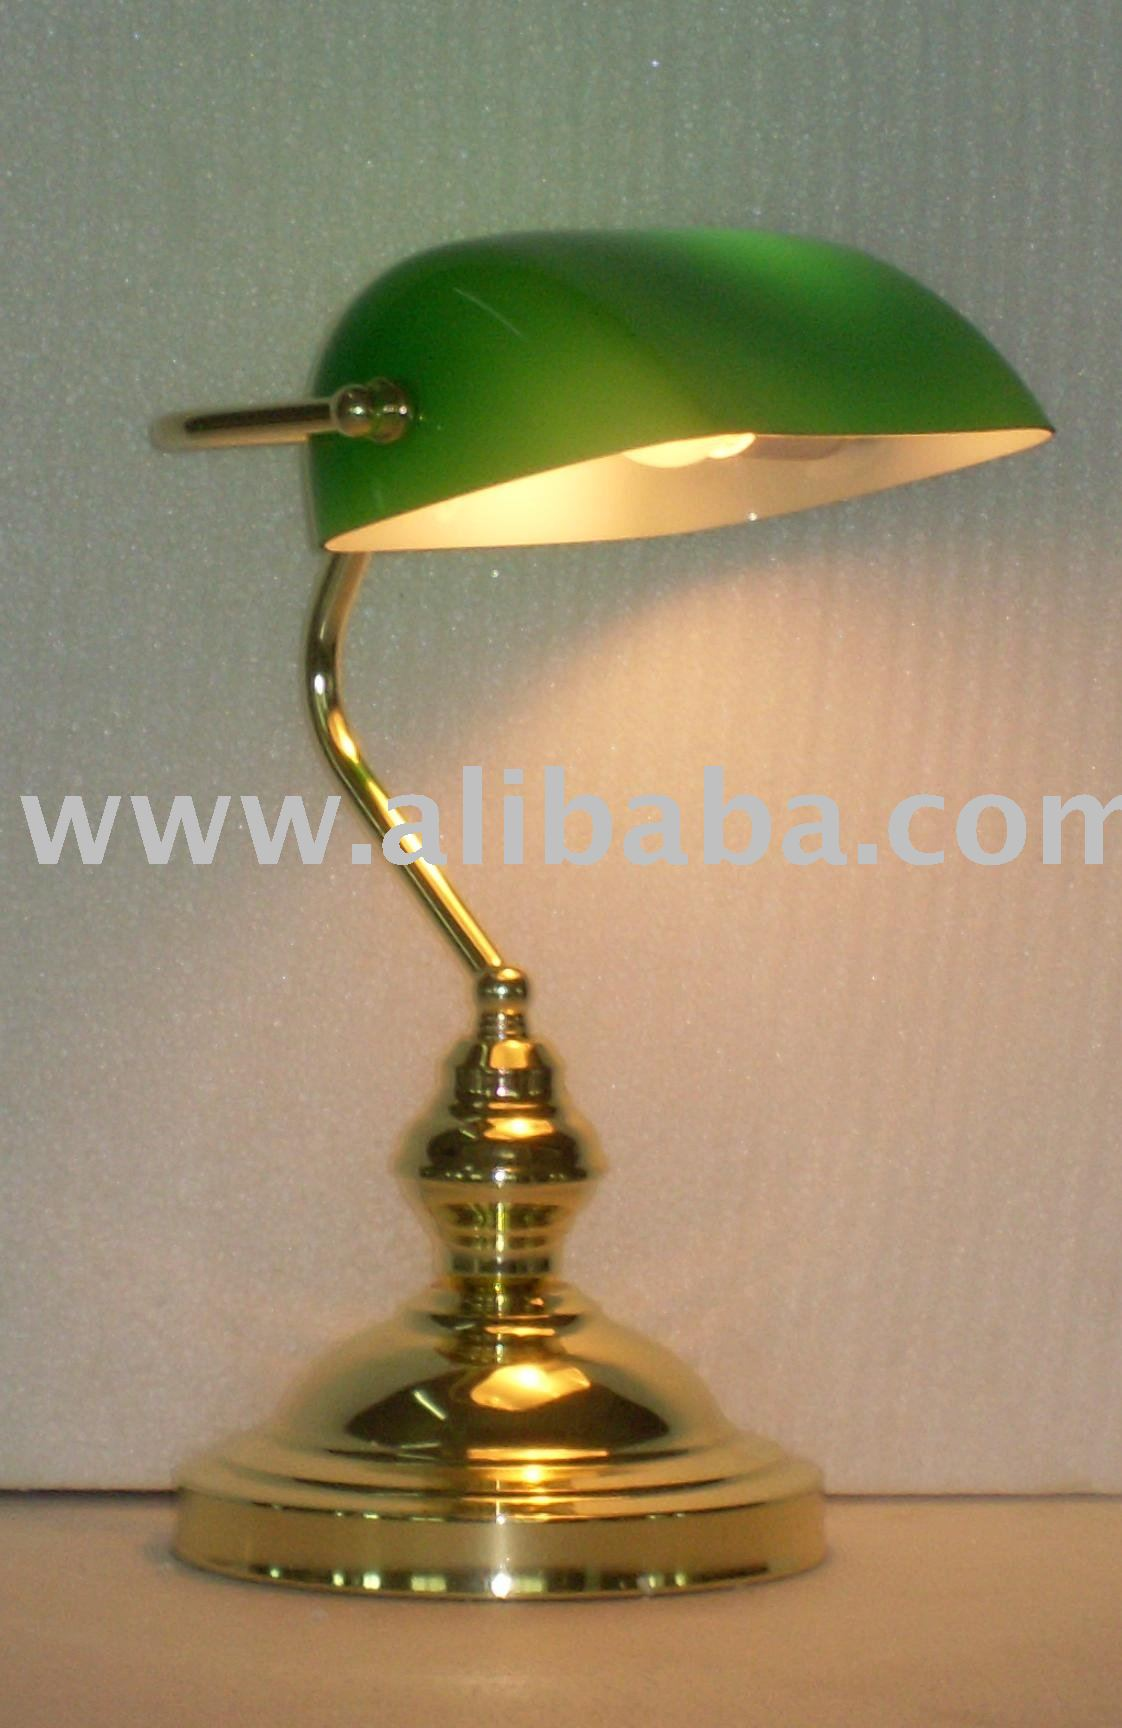 Banker lampbank lamp bank table lamp table lamphome lamp banker lampbank lamp bank table lamp table lamphome lamp aluminium table lampglass lampglass table lamp buy glass lampglass table lampbanker aloadofball Images